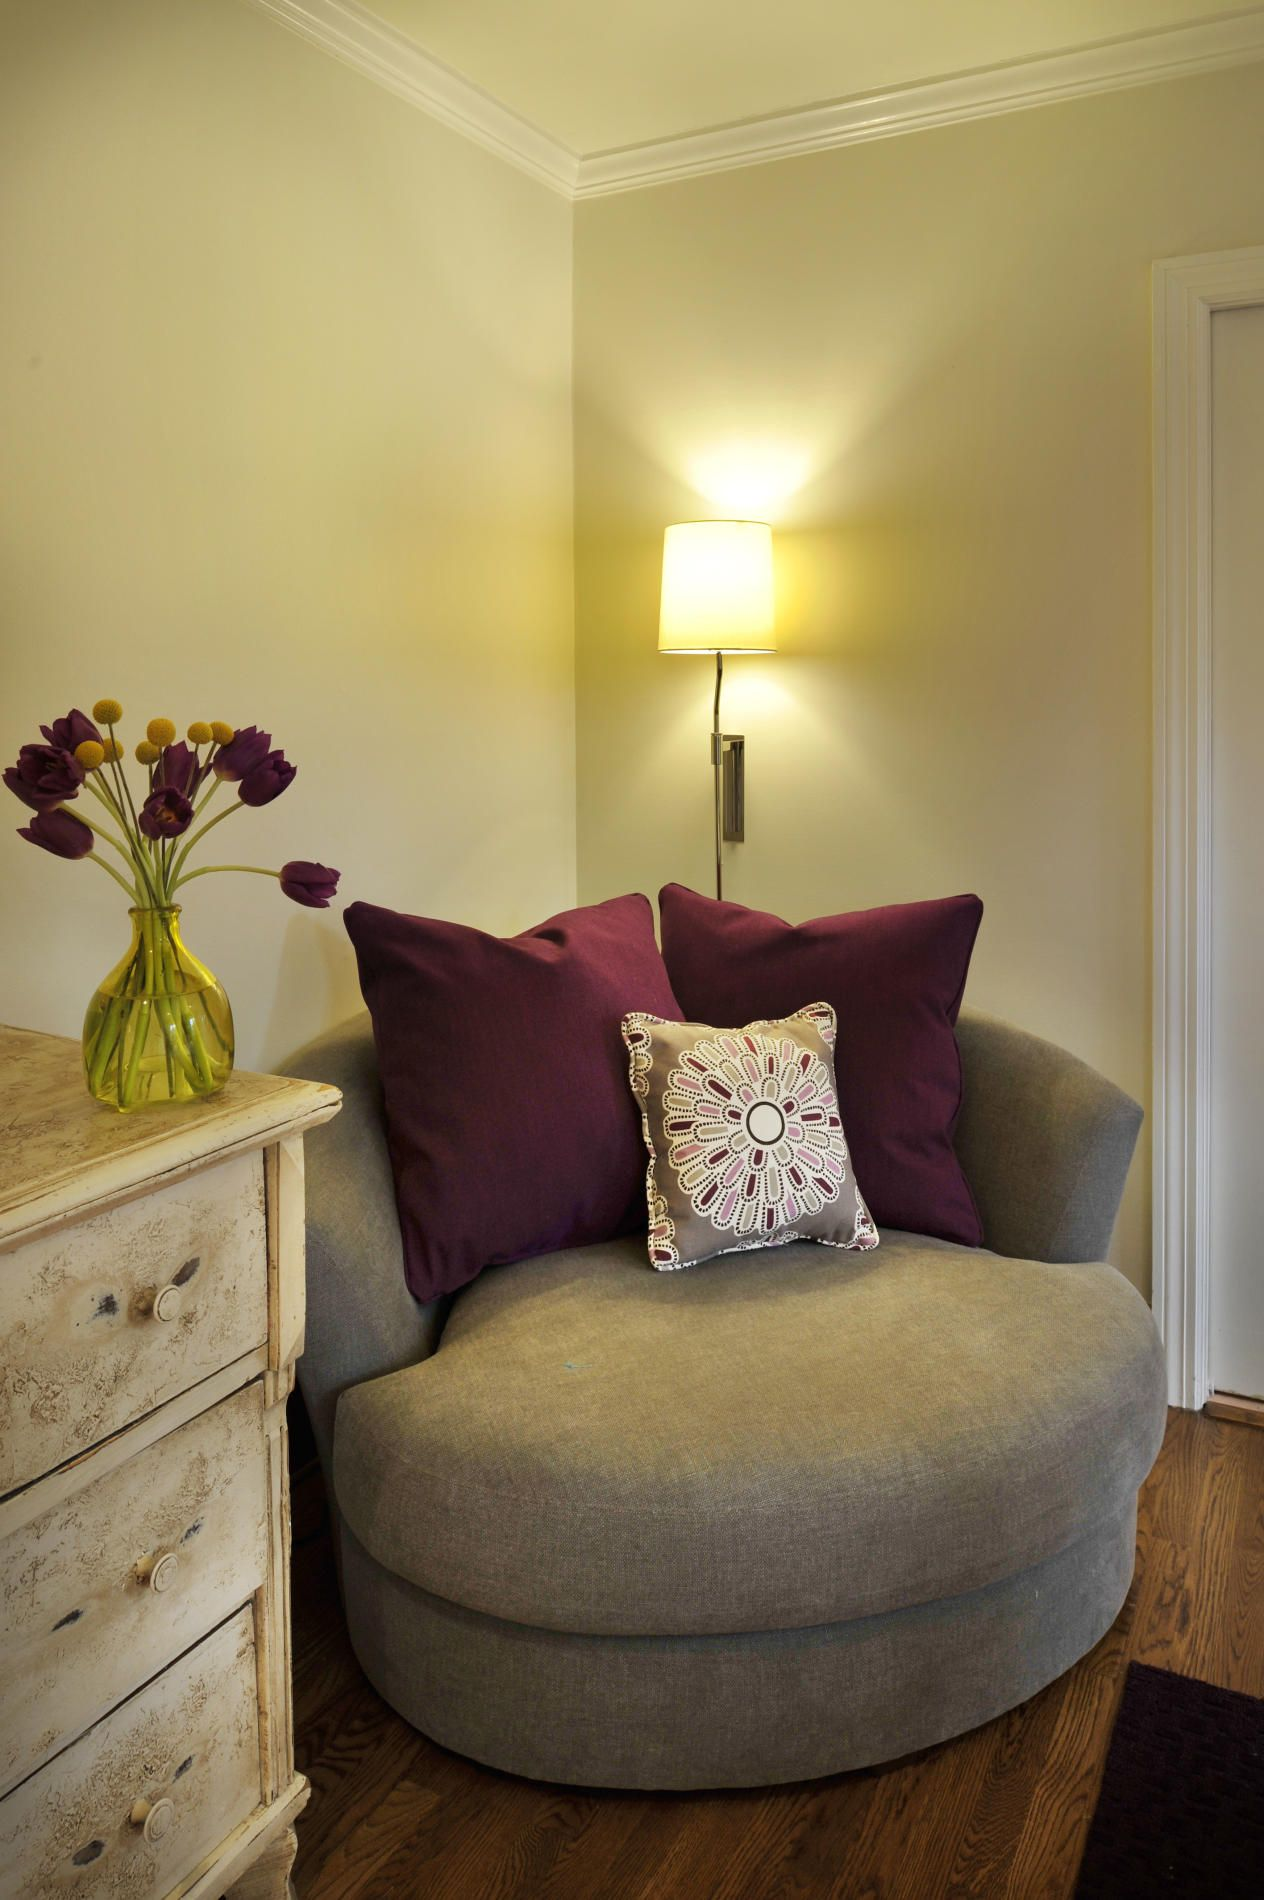 Great corner chair Choose an oversized chair in a small space